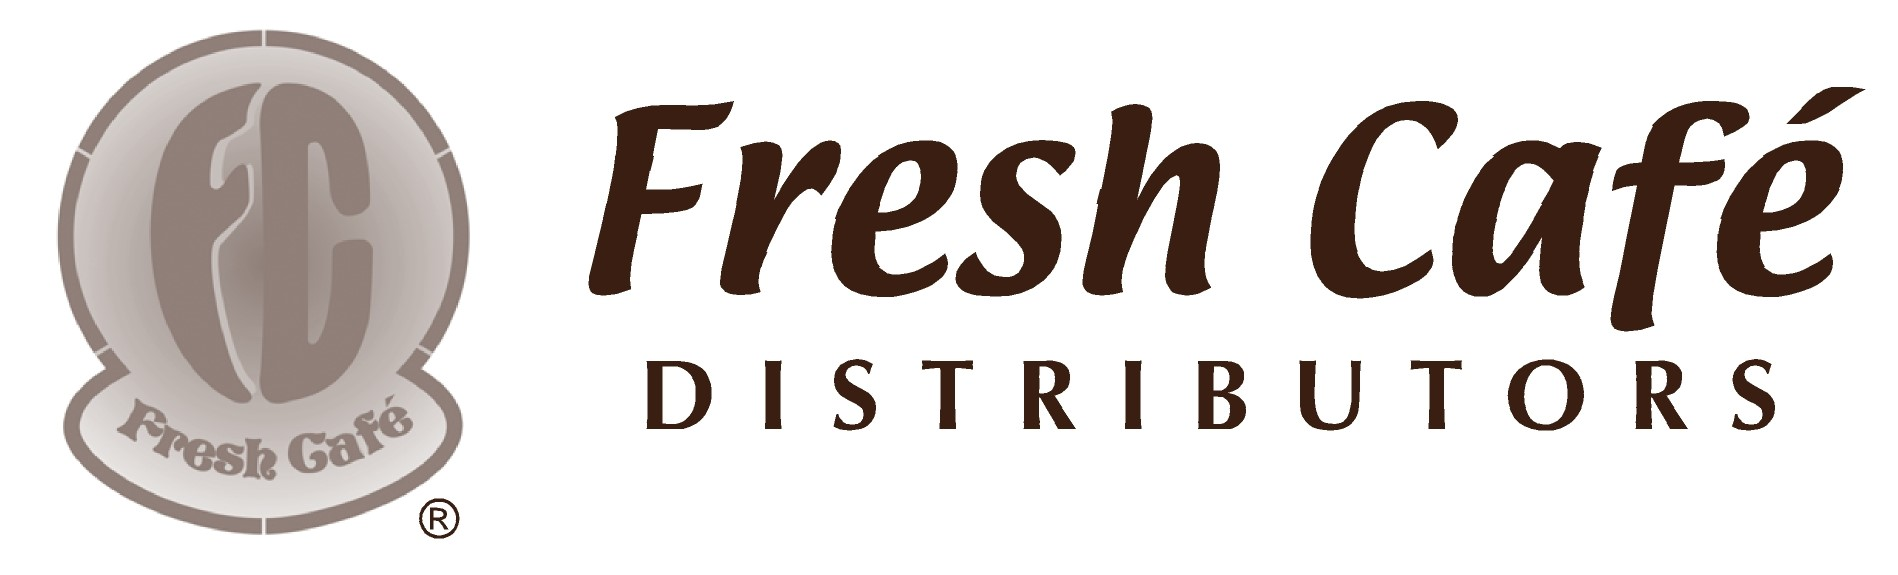 FRESH CAFE DISTRIBUTORS